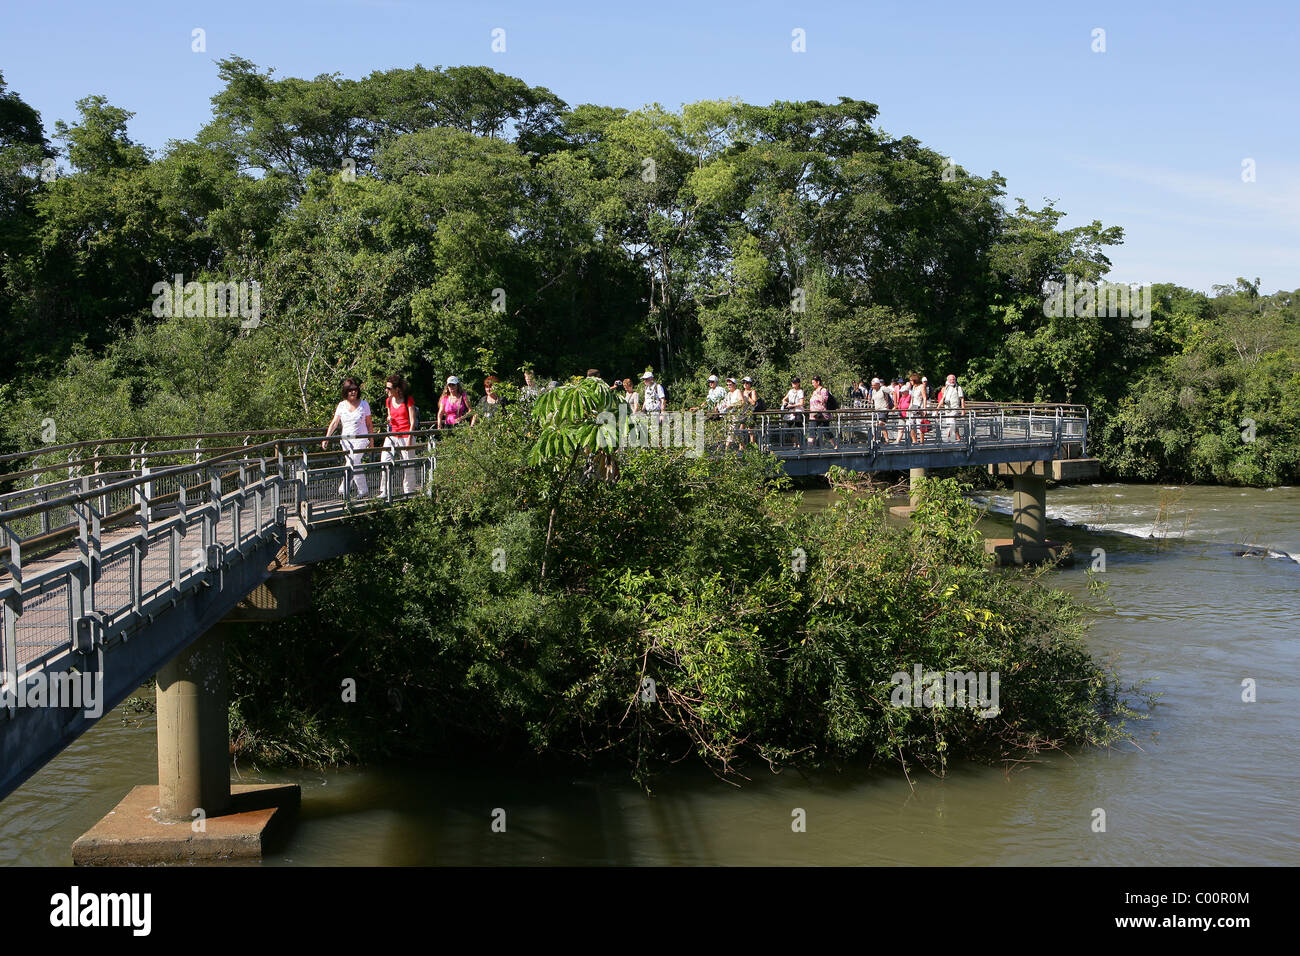 Tourists on raised walkway over [Rio Iguazu] near Garganta del Diabolo [Devil's Throat] at [Iguassu Falls] - Stock Image